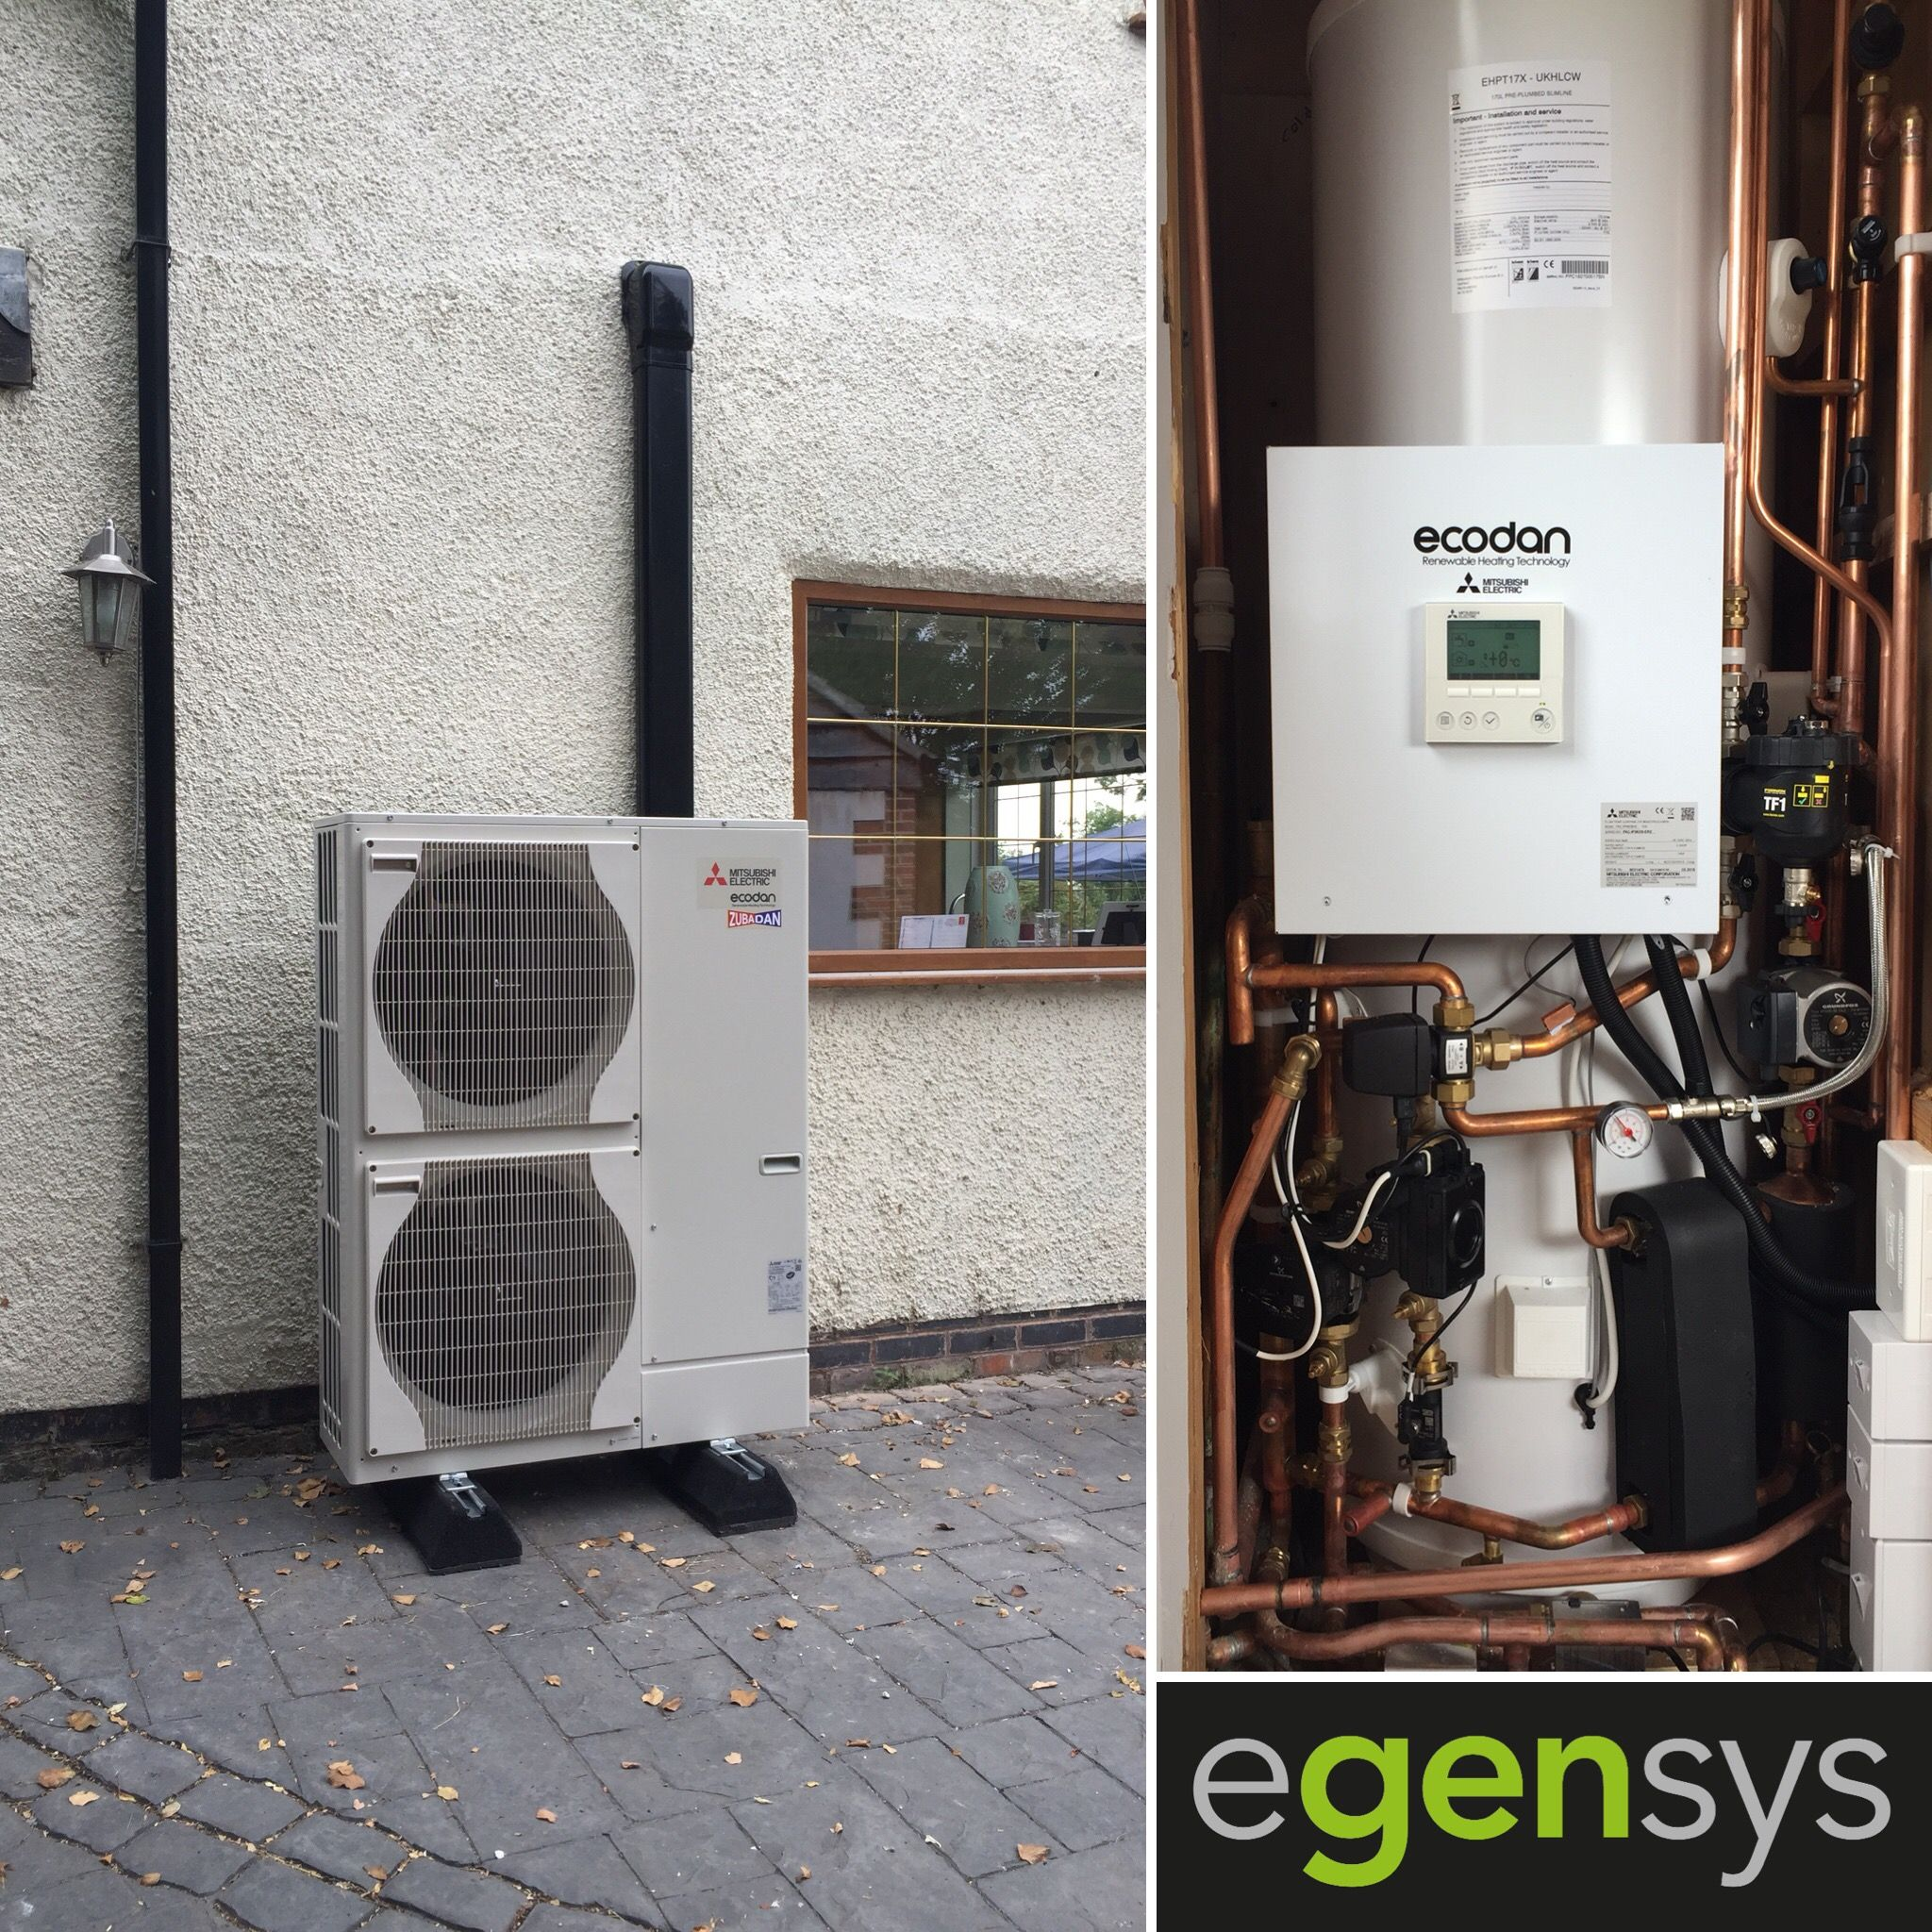 14kw Ecodan Ashp With 170l Mitsubishi Pre Plumbed Slimline Cylinder Installed Into A Solid Wall Construction Property In Aston On T Heat Pump Installation Heat